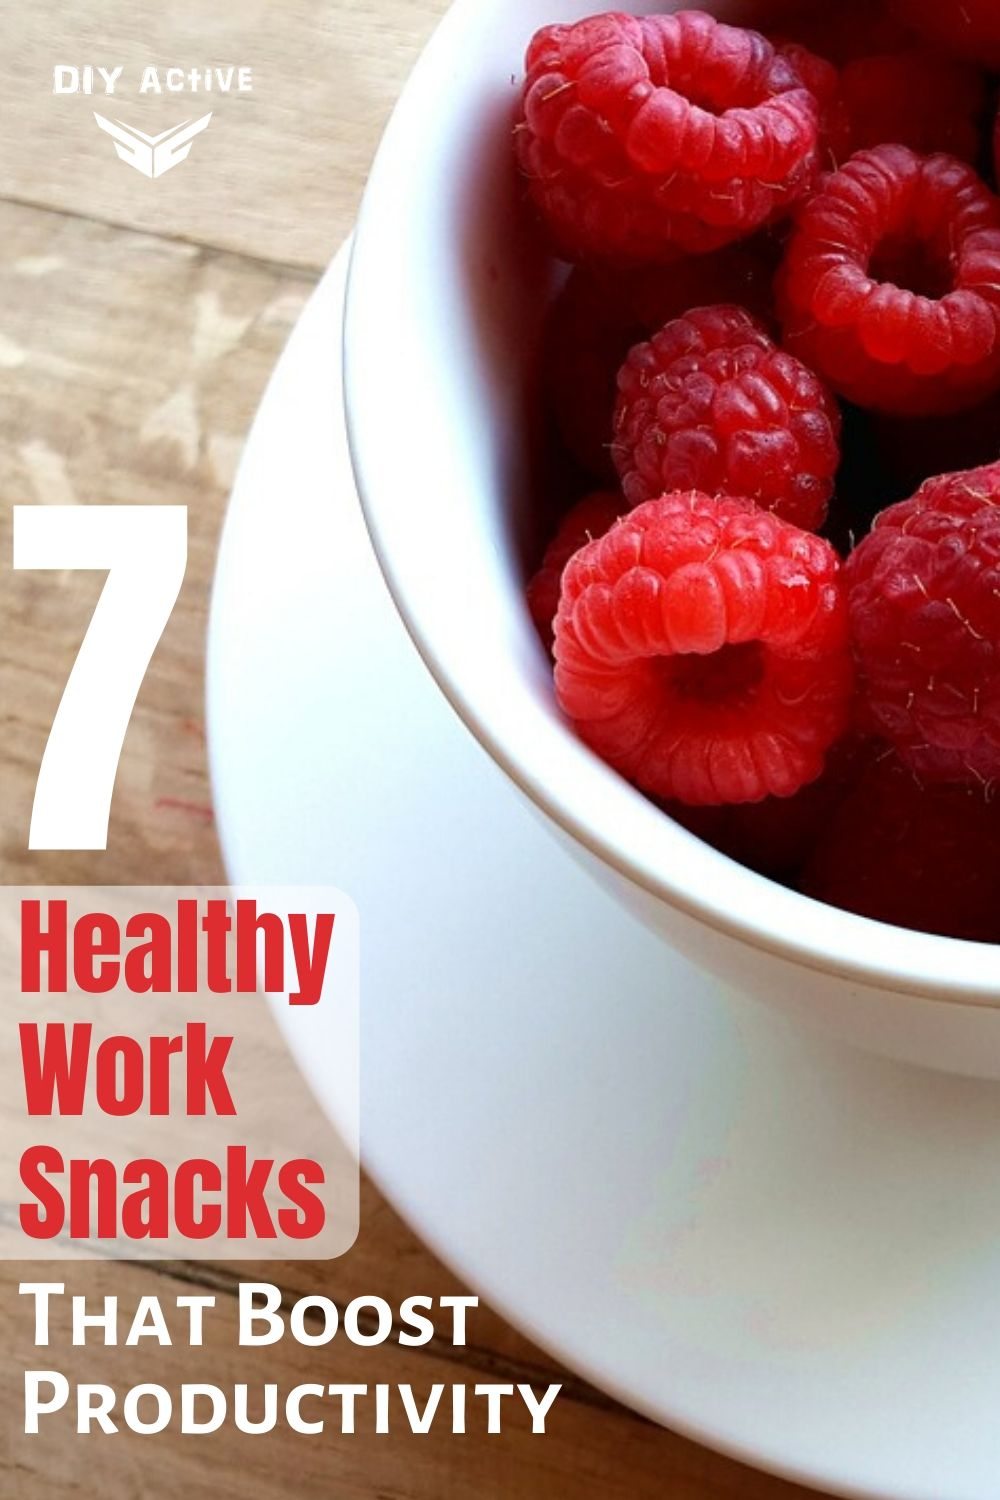 7 Healthy Work Snacks That Boost Immunity and Productivity